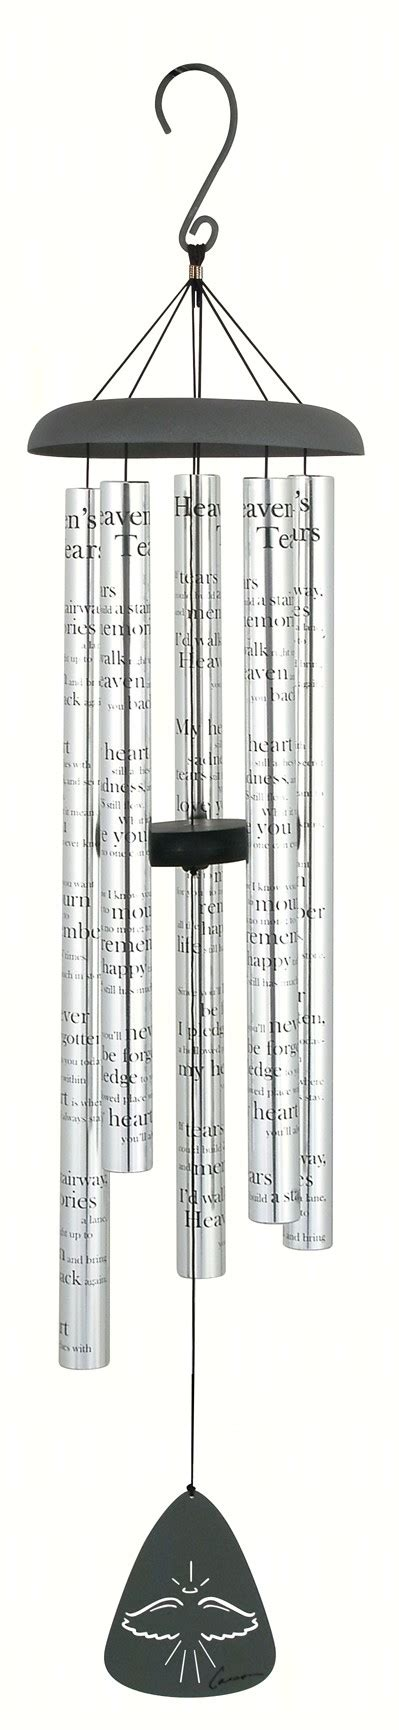 carson home accents heavens tears 44 inch sonnet windchime